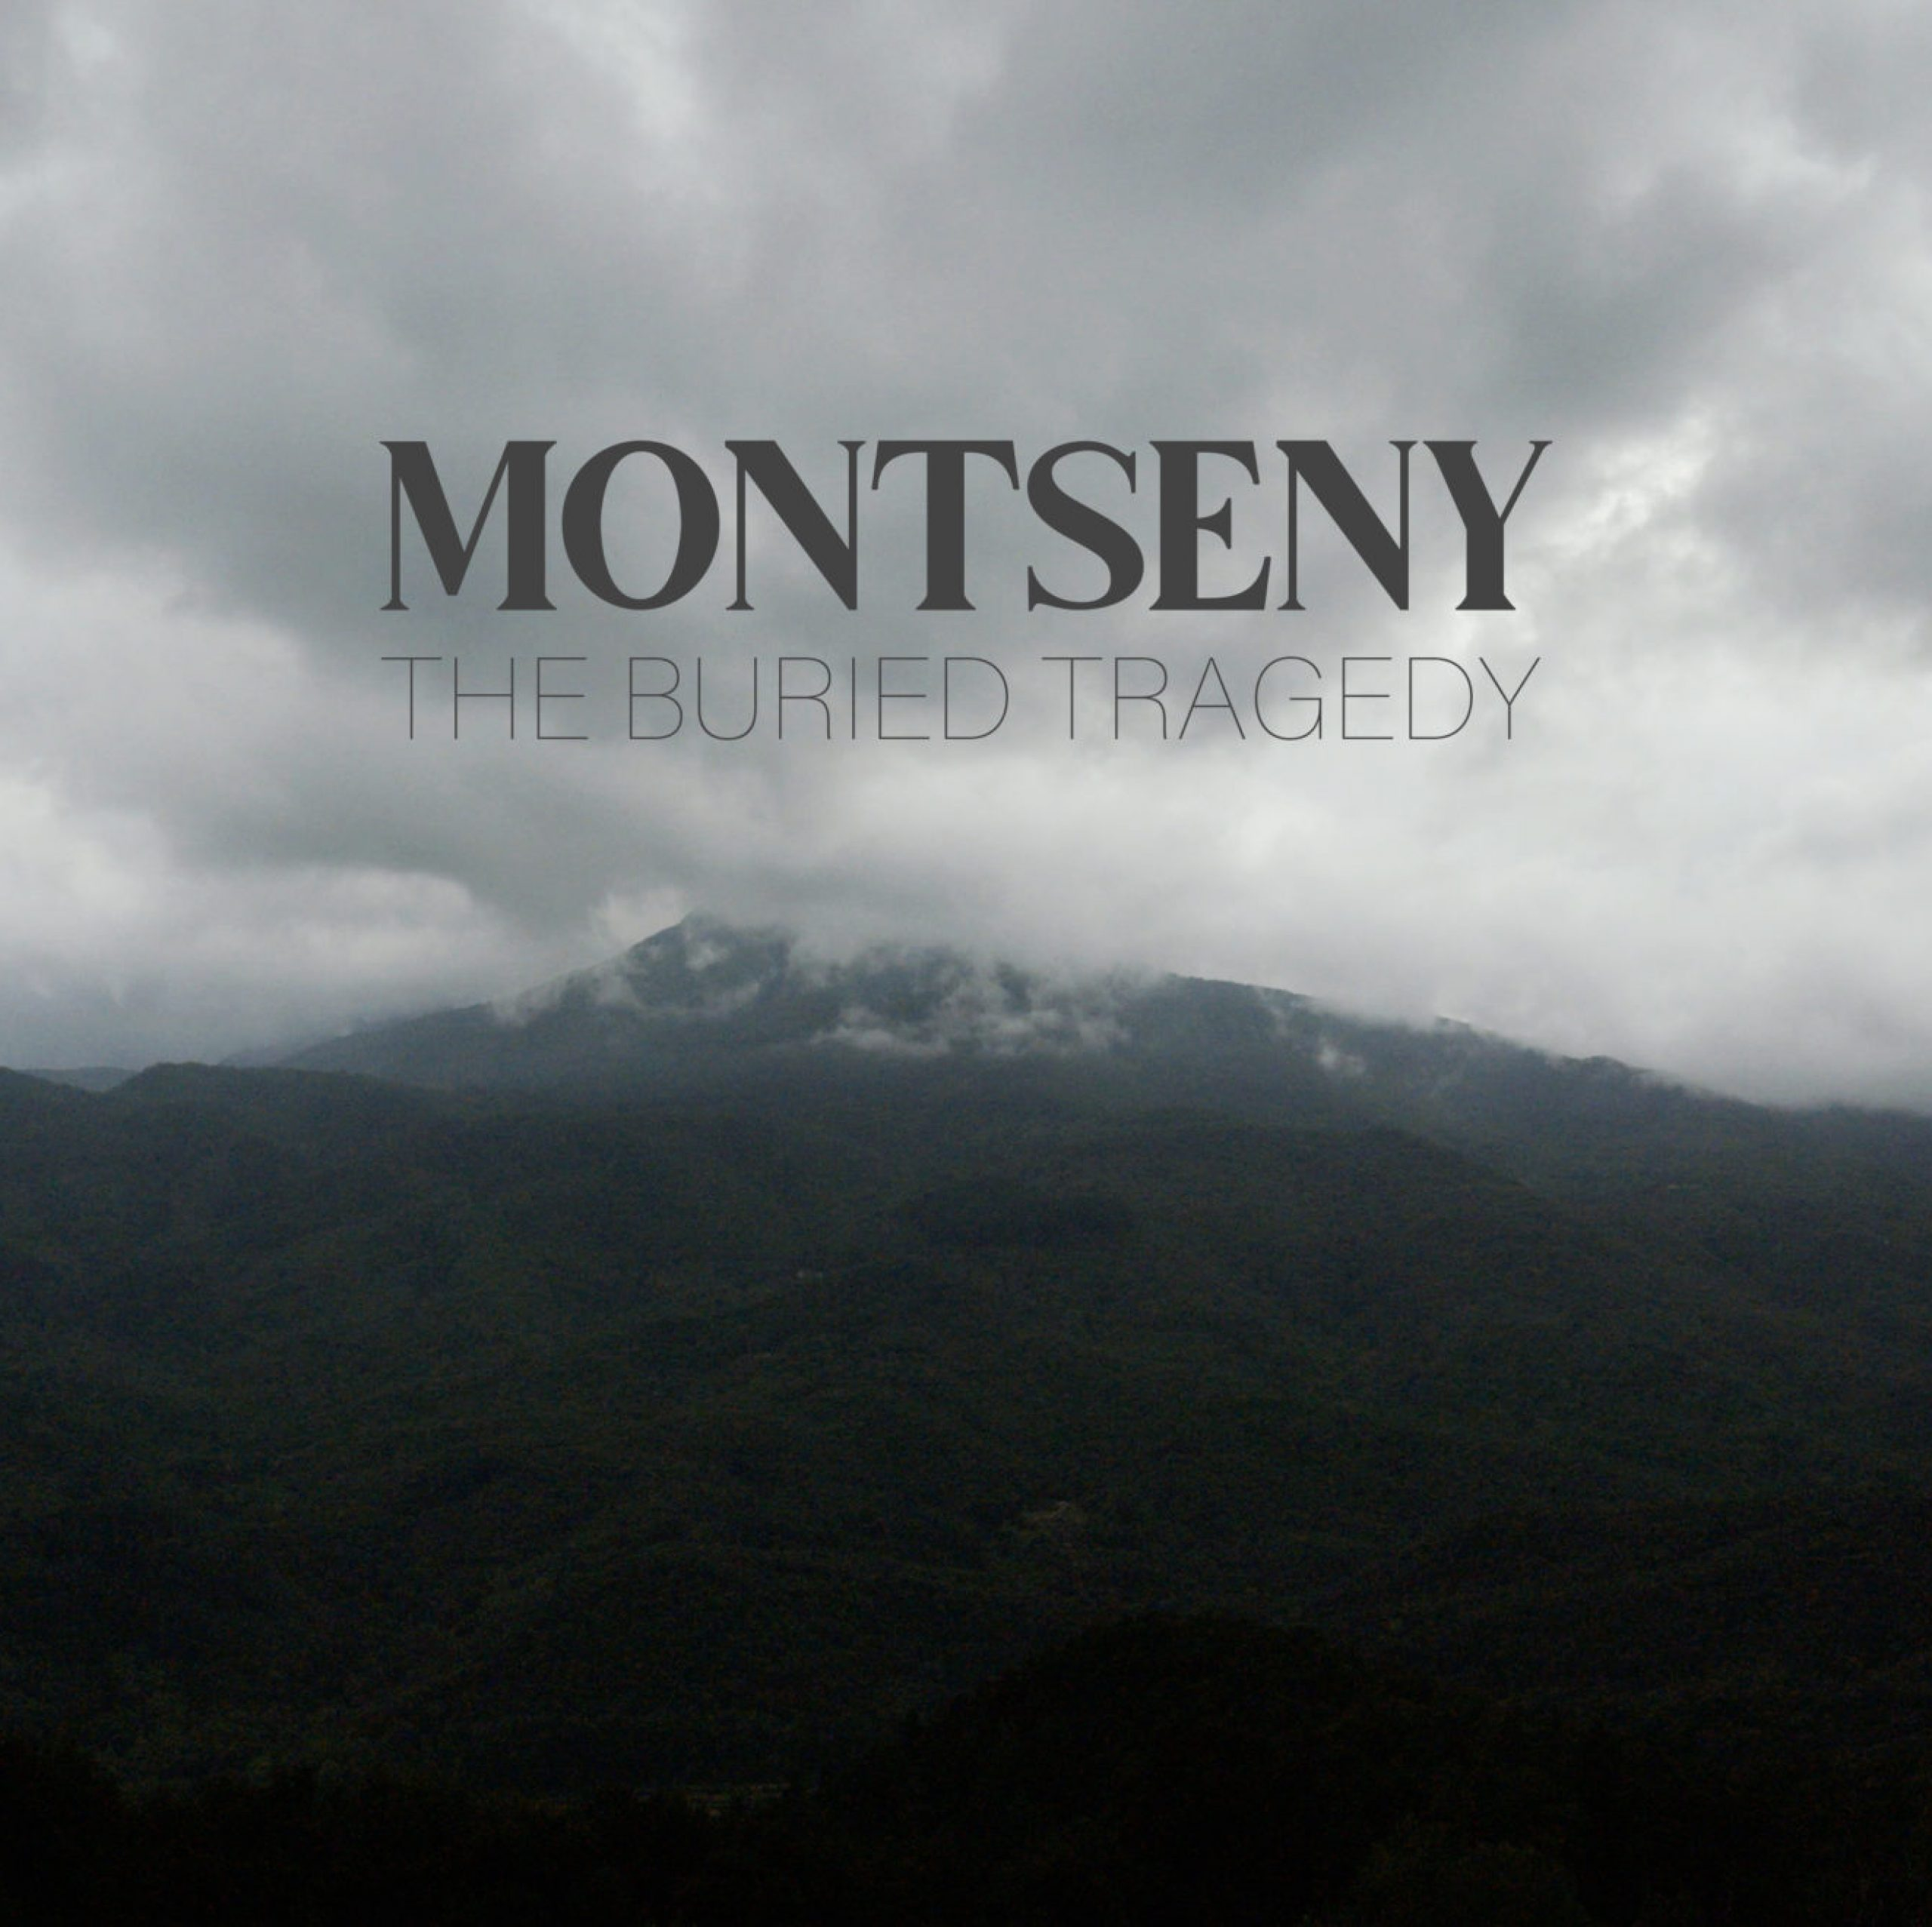 Montseny. the buried tragedy